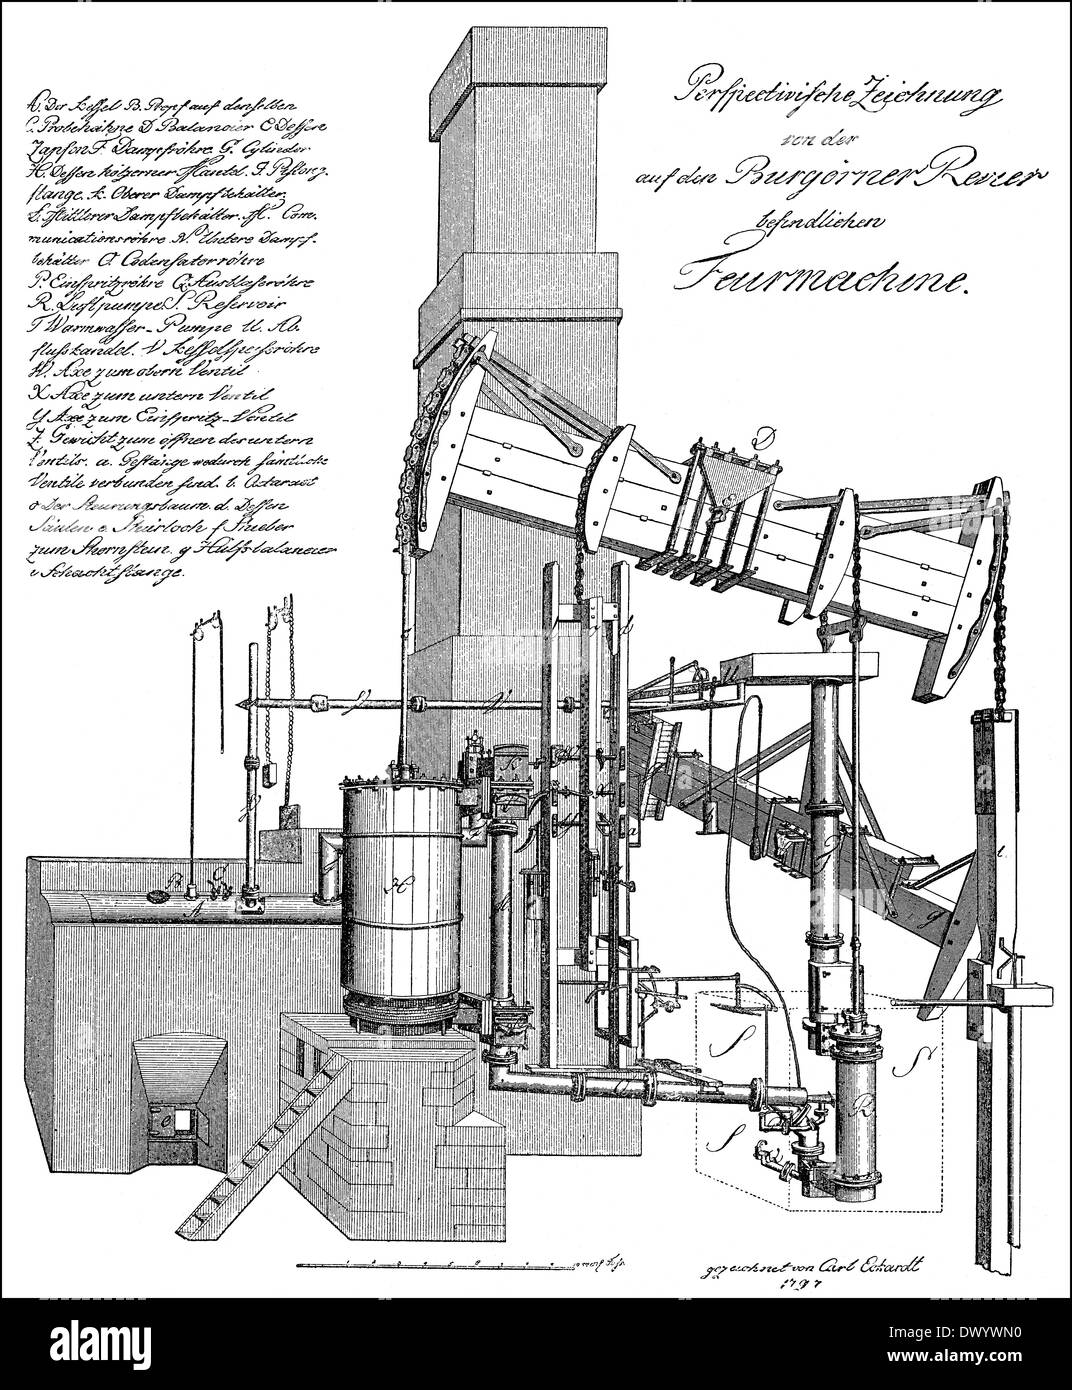 the first steam engine in Germany, 1785, Hettstedt, Germany, 18th Century,